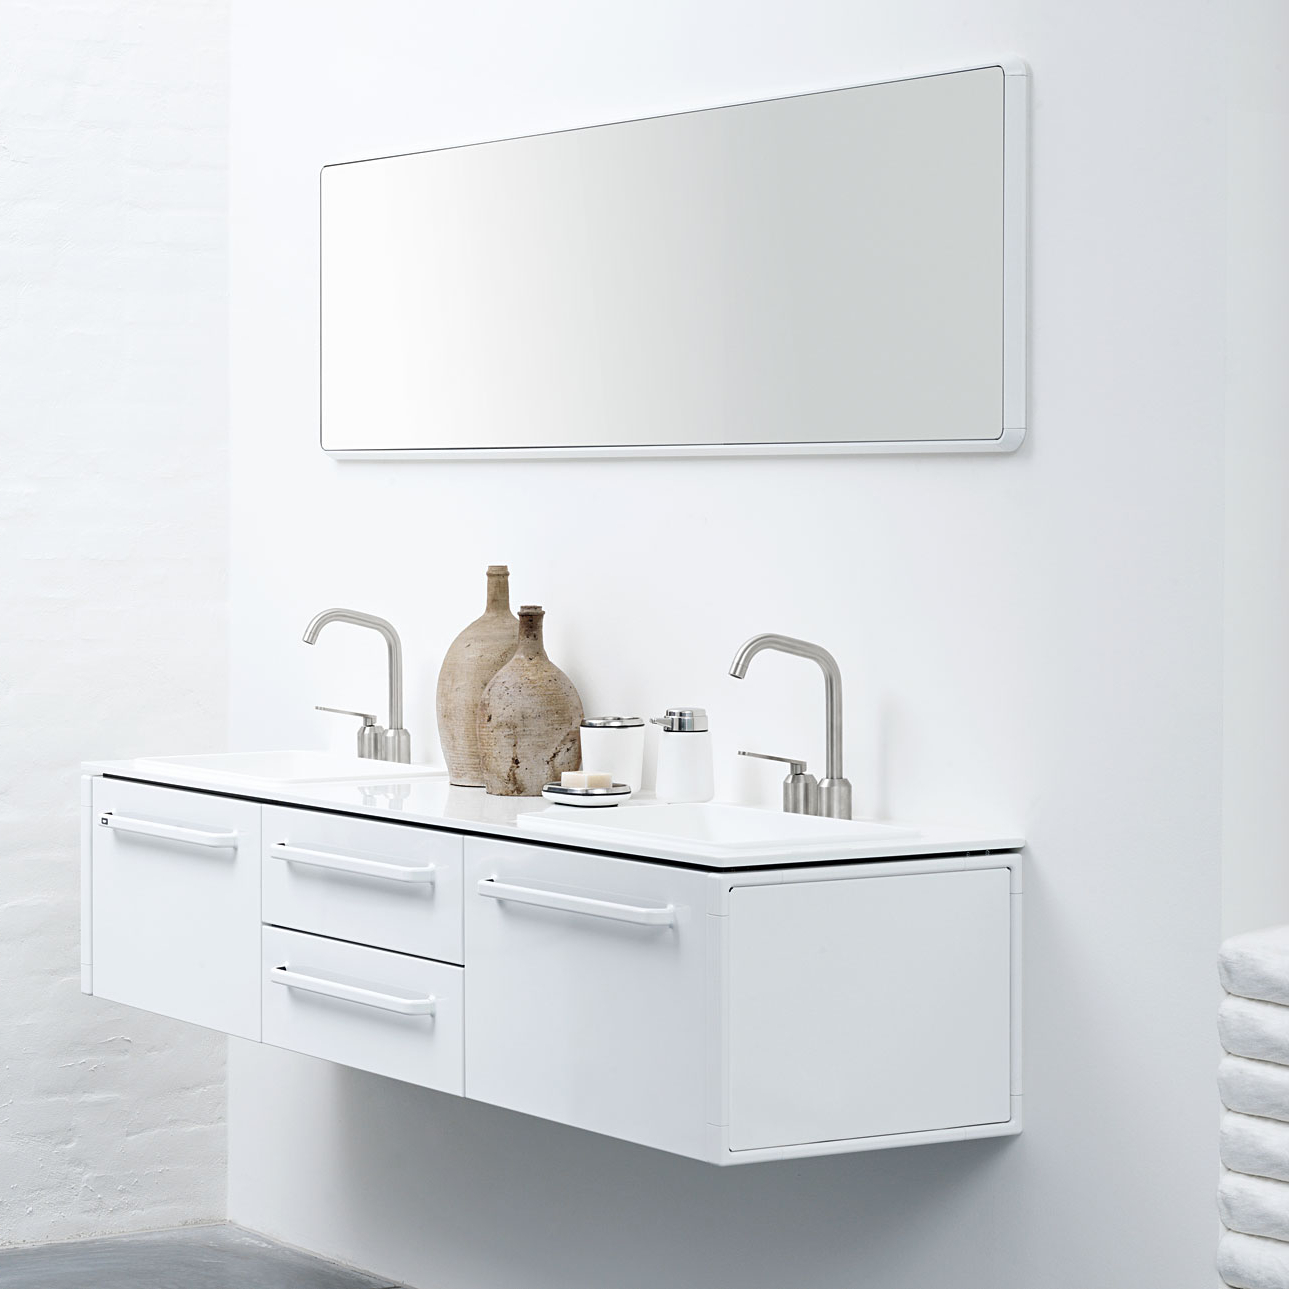 Best And Newest Vipp 913 Large Wall Mirror White With Regard To Large Bathroom Wall Mirrors (View 13 of 20)